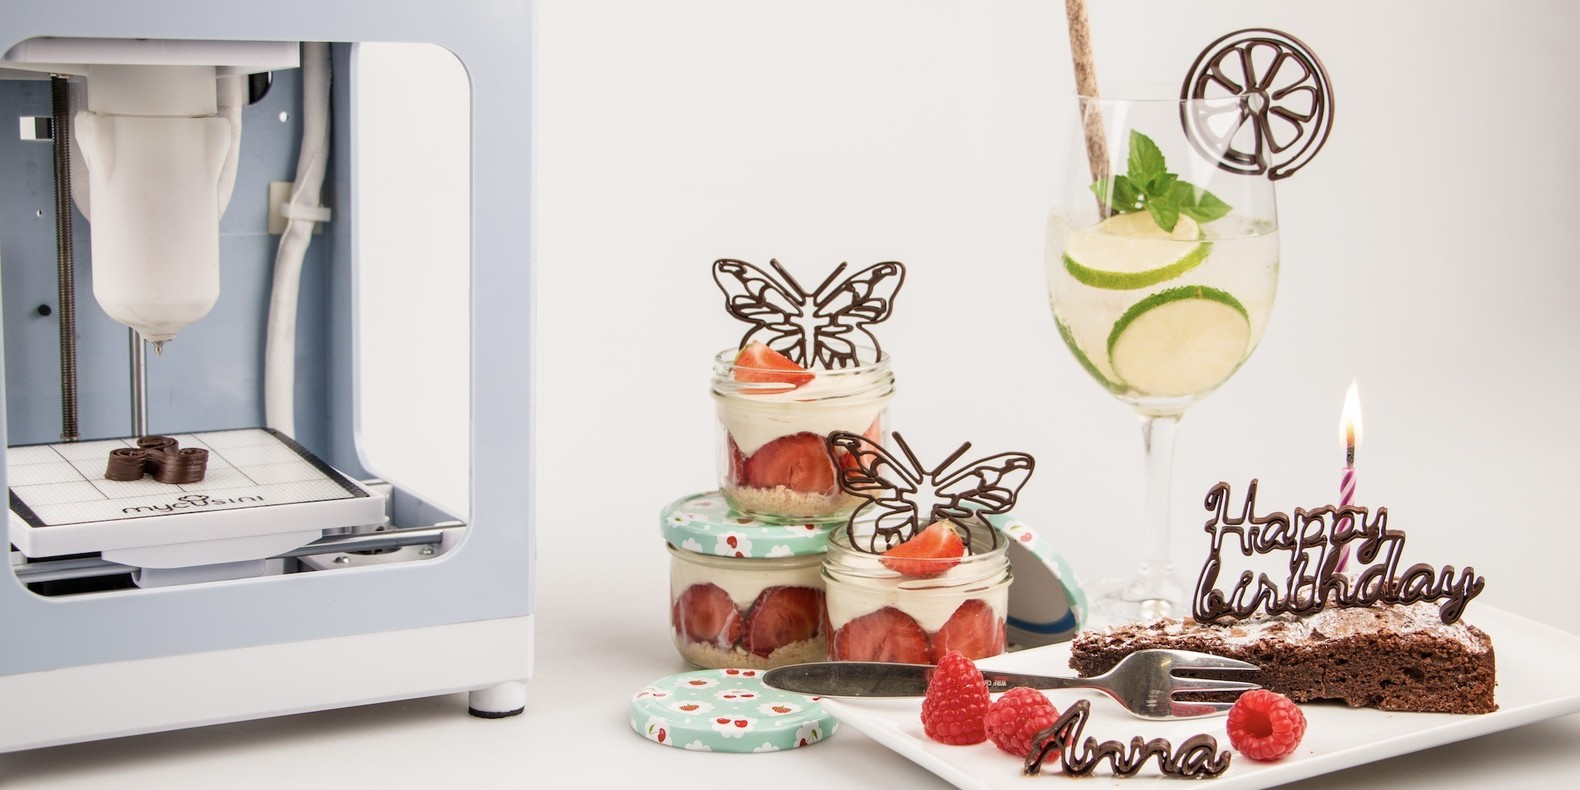 Kitchen revolution: mycusini 3D Choco printer